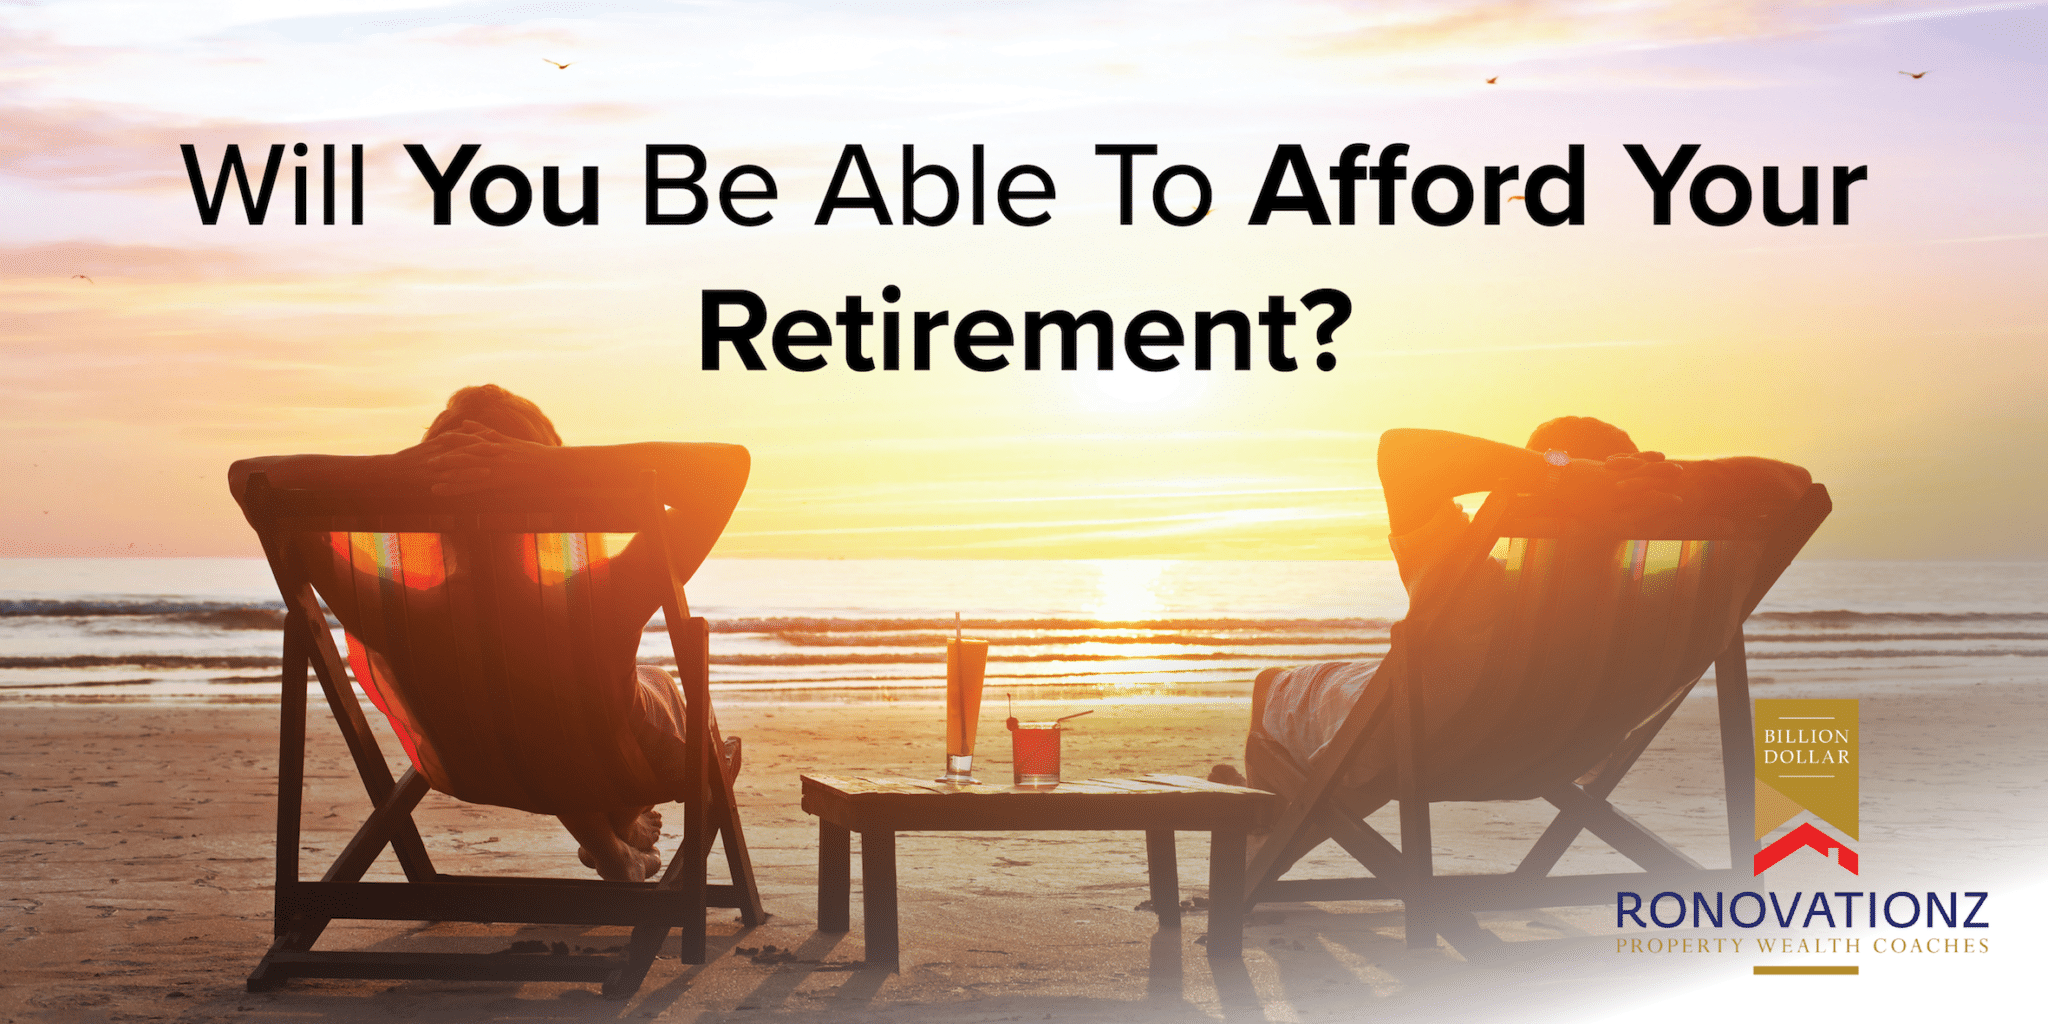 Will You Be Able To Afford Your Retirement (even if it is decades away)?